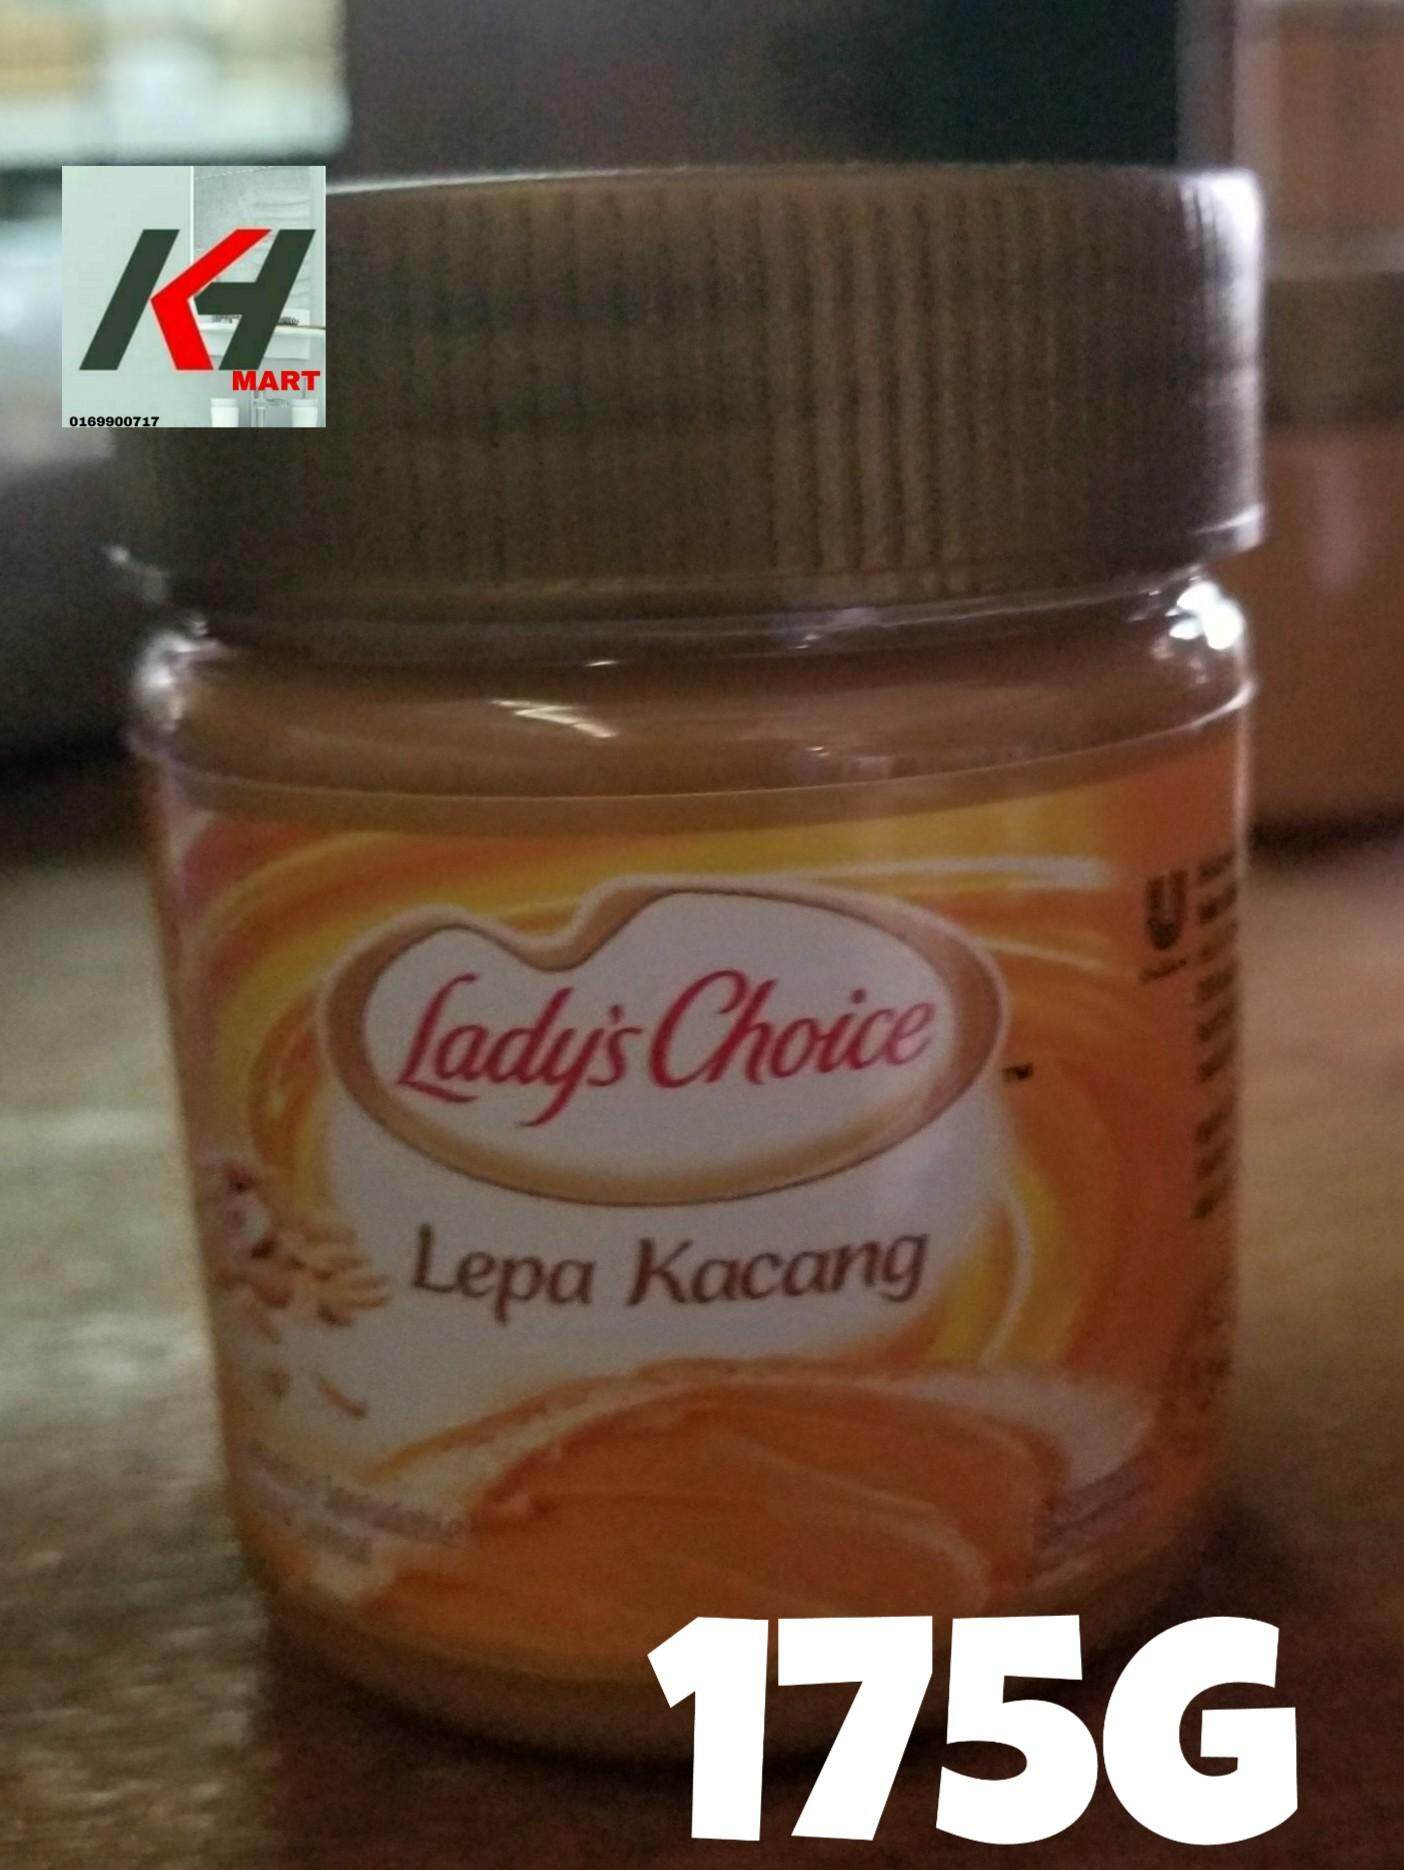 LADY'S CHOICE PEANUT BUTTER (LEPA KACANG) - 160G  READY STOCK